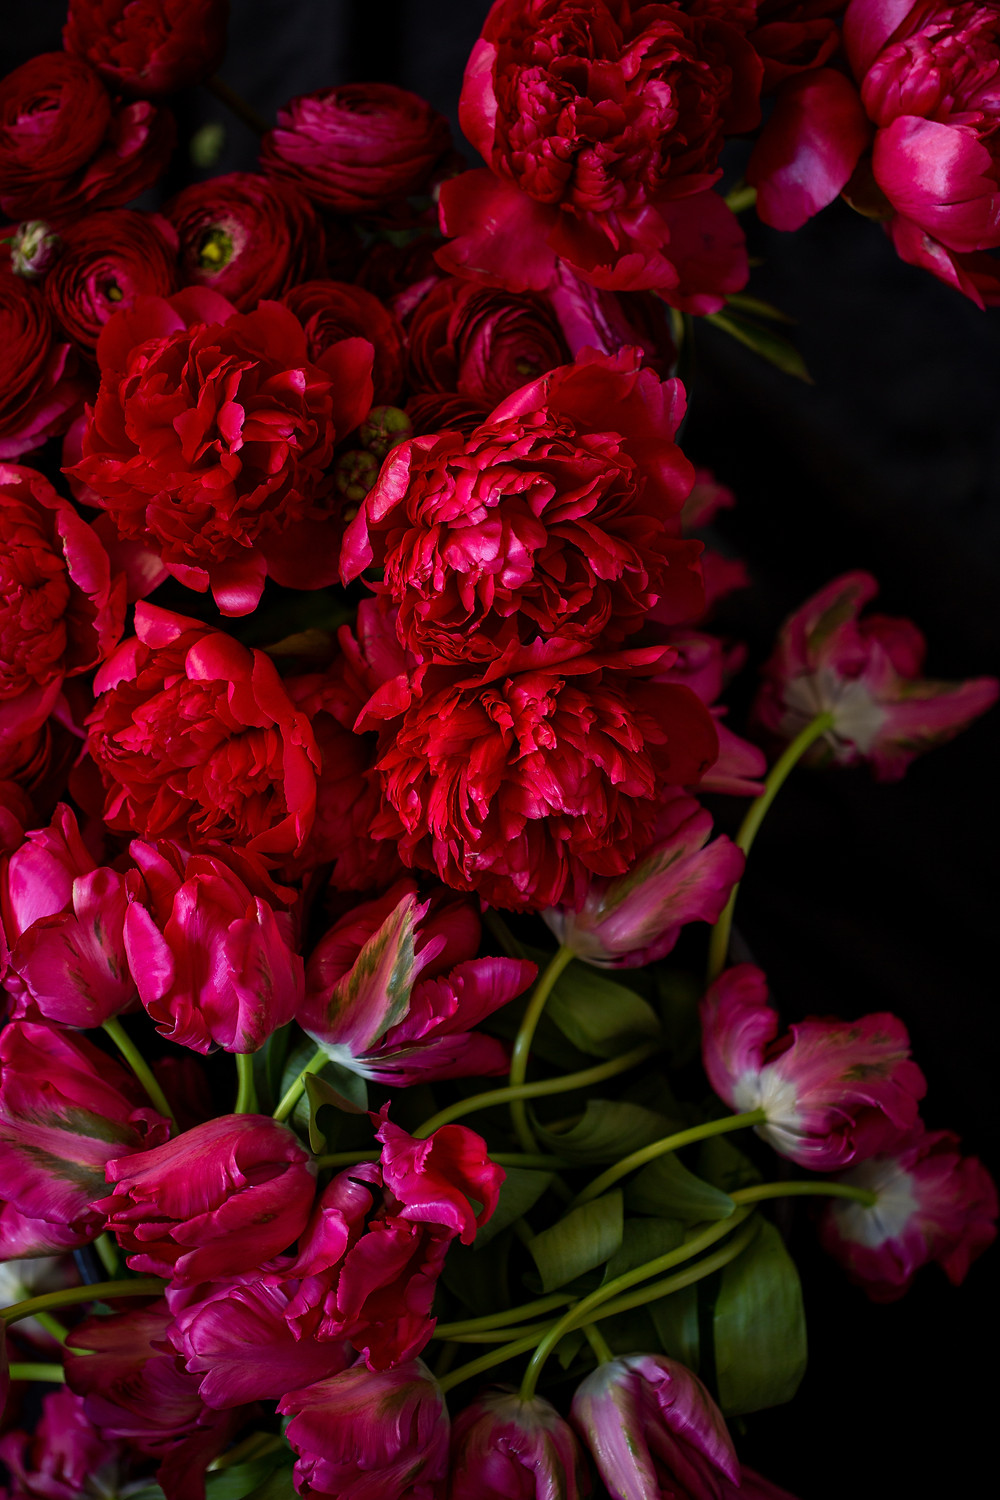 Flower photo of peonies and parrot tulips